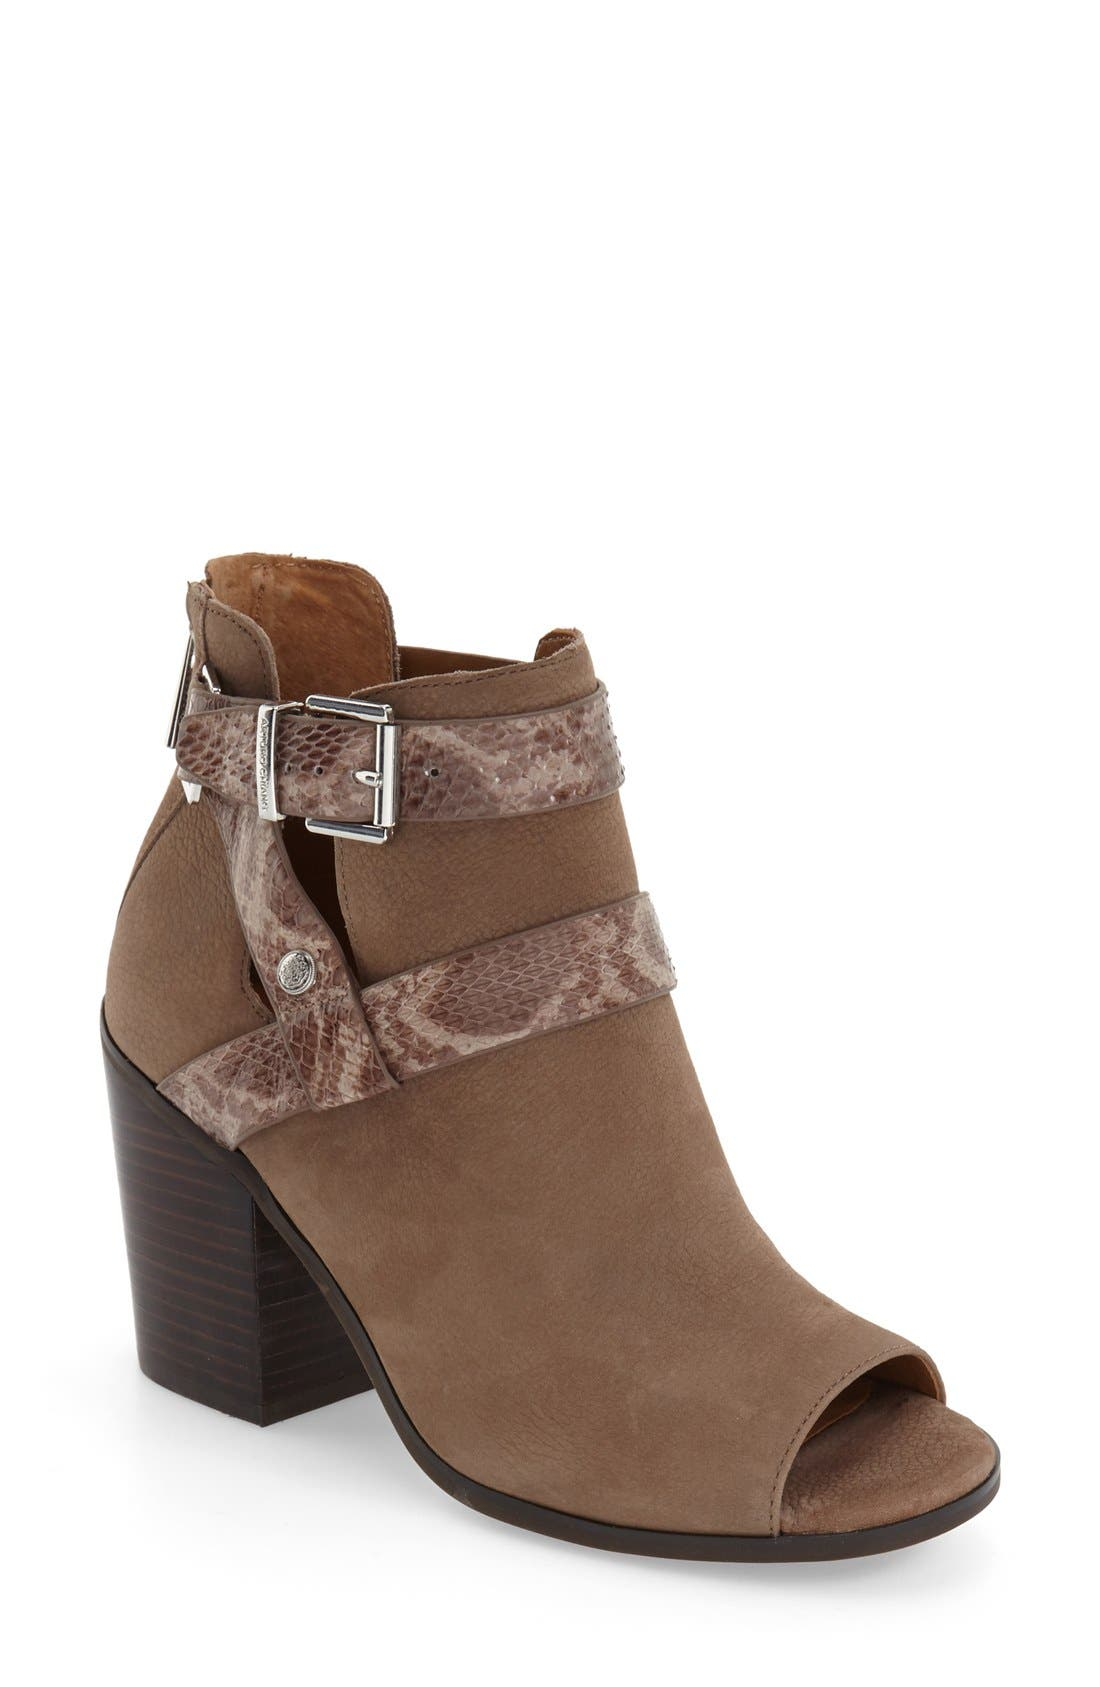 ARTURO CHIANG 'Caraleigh' Peep Toe Bootie